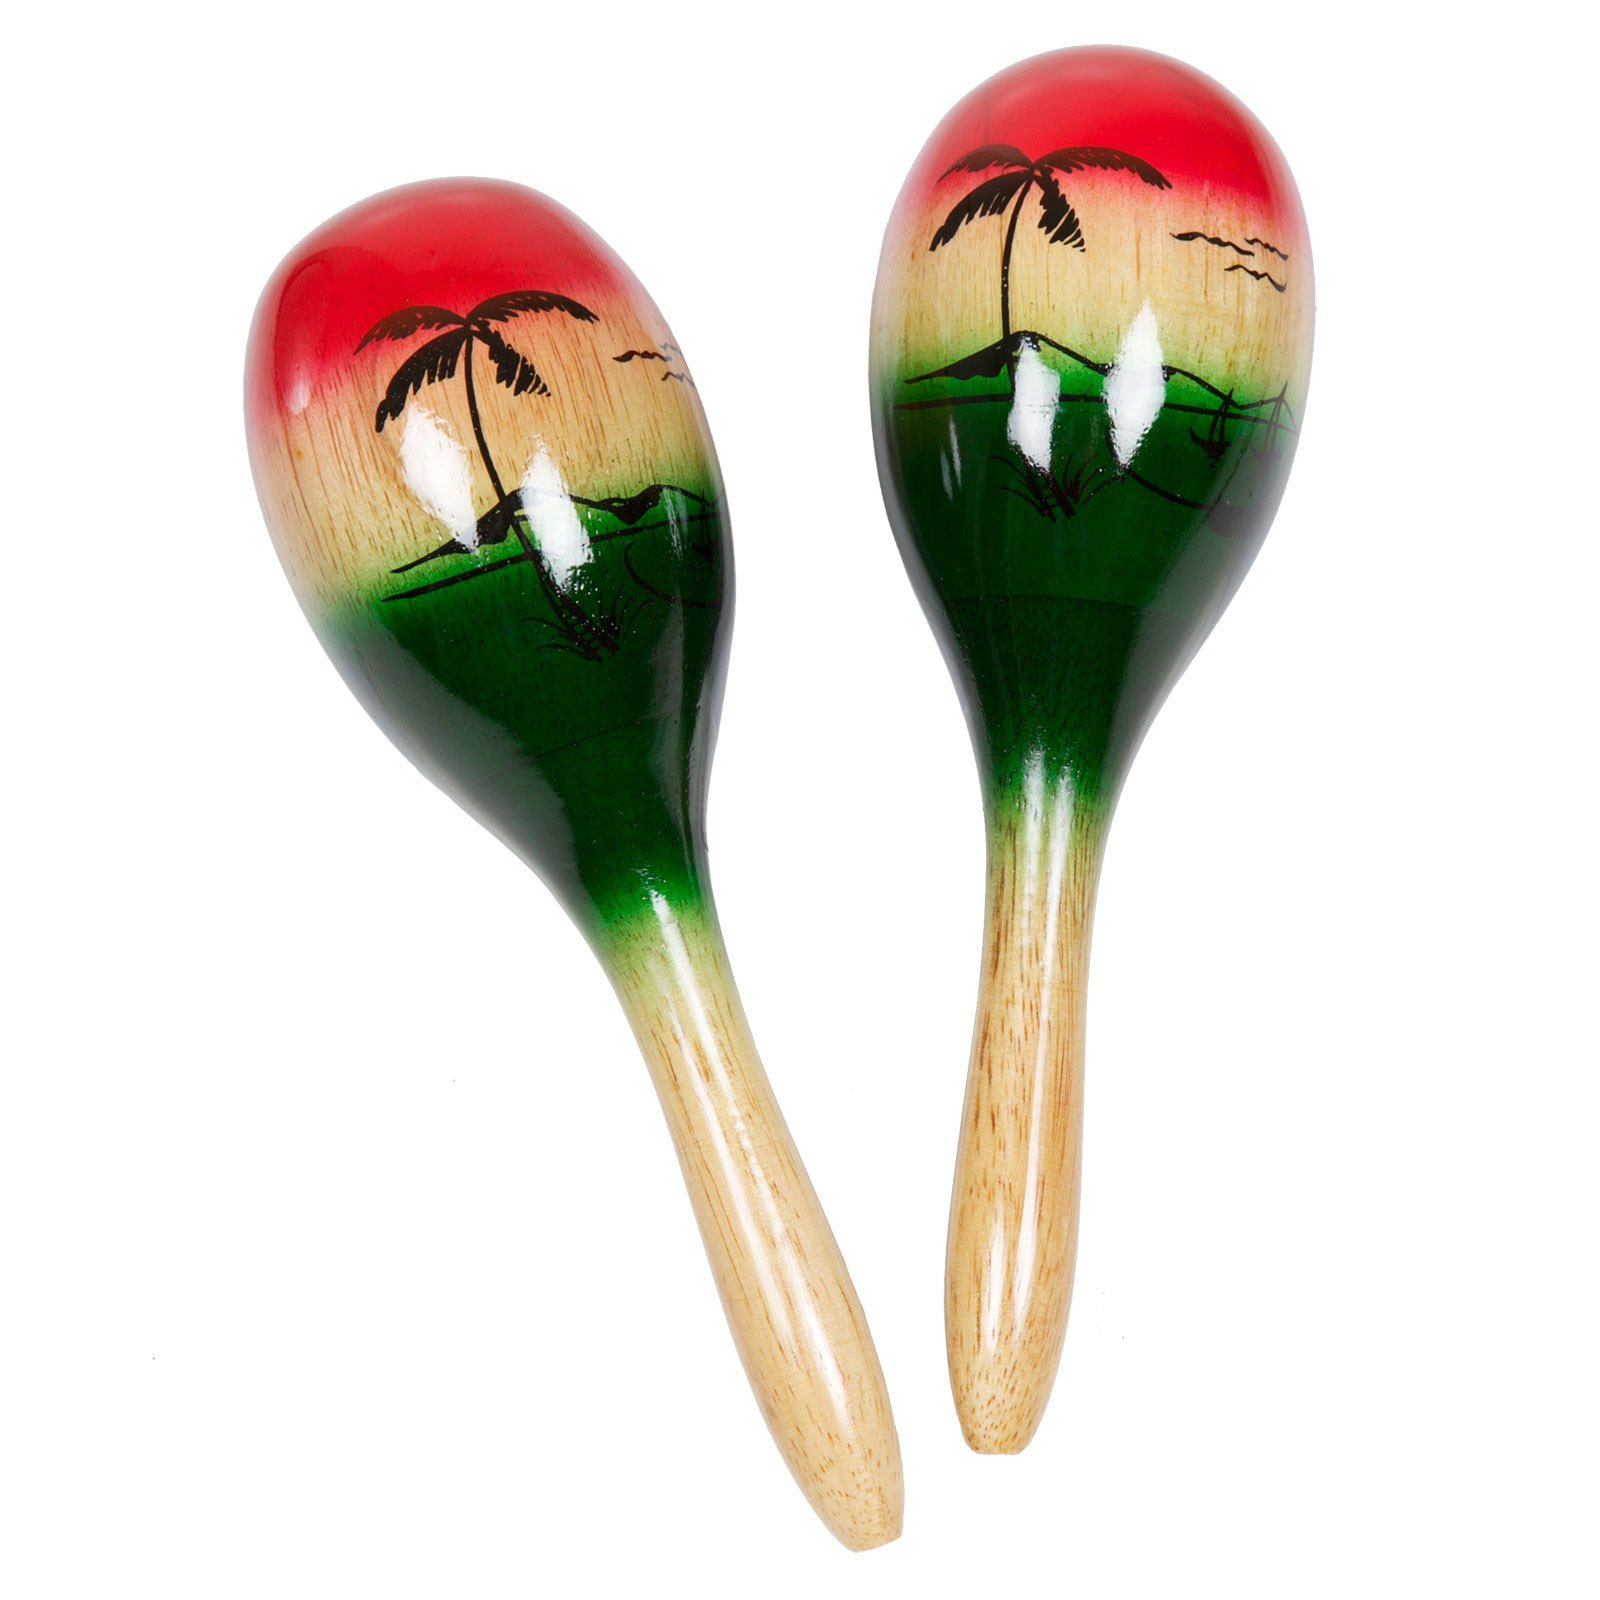 X8 Drums Tropical Wood Maracas